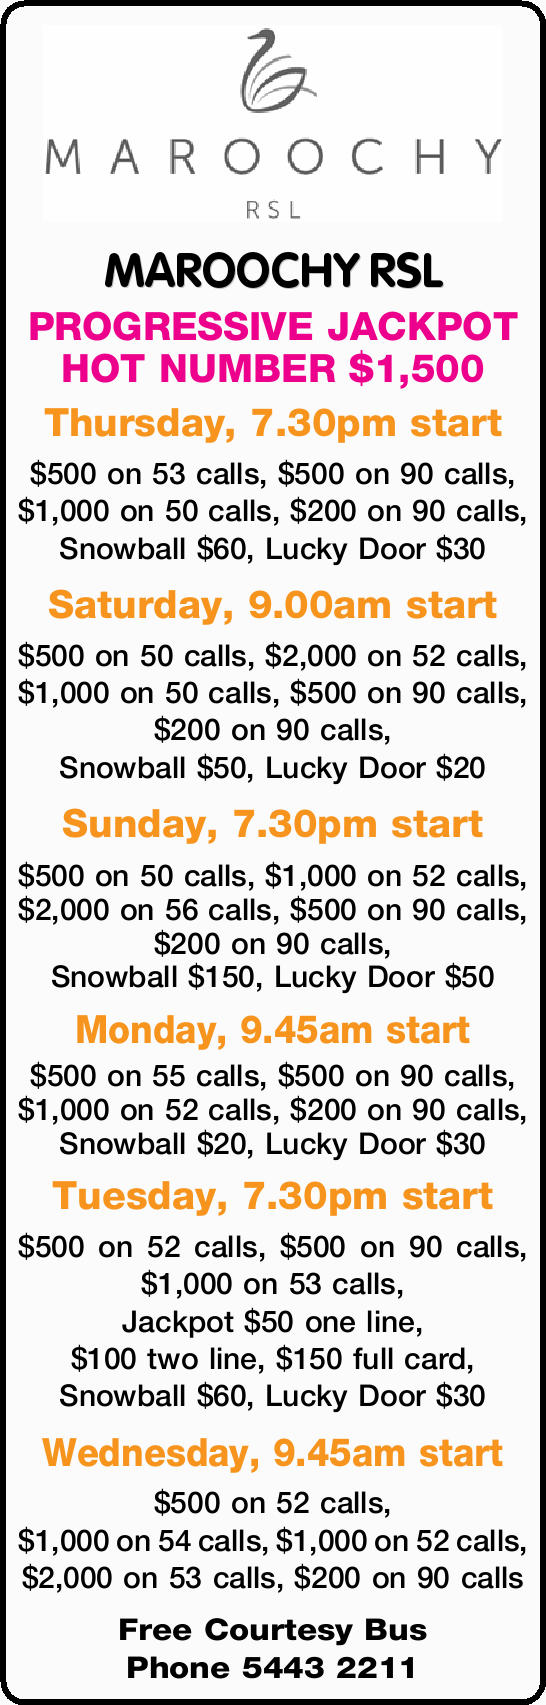 PROGRESSIVE JACKPOT HOT NUMBER $1,500 Thursday, 7.30pm start $500 on 53 calls, $500 on 90 calls,...